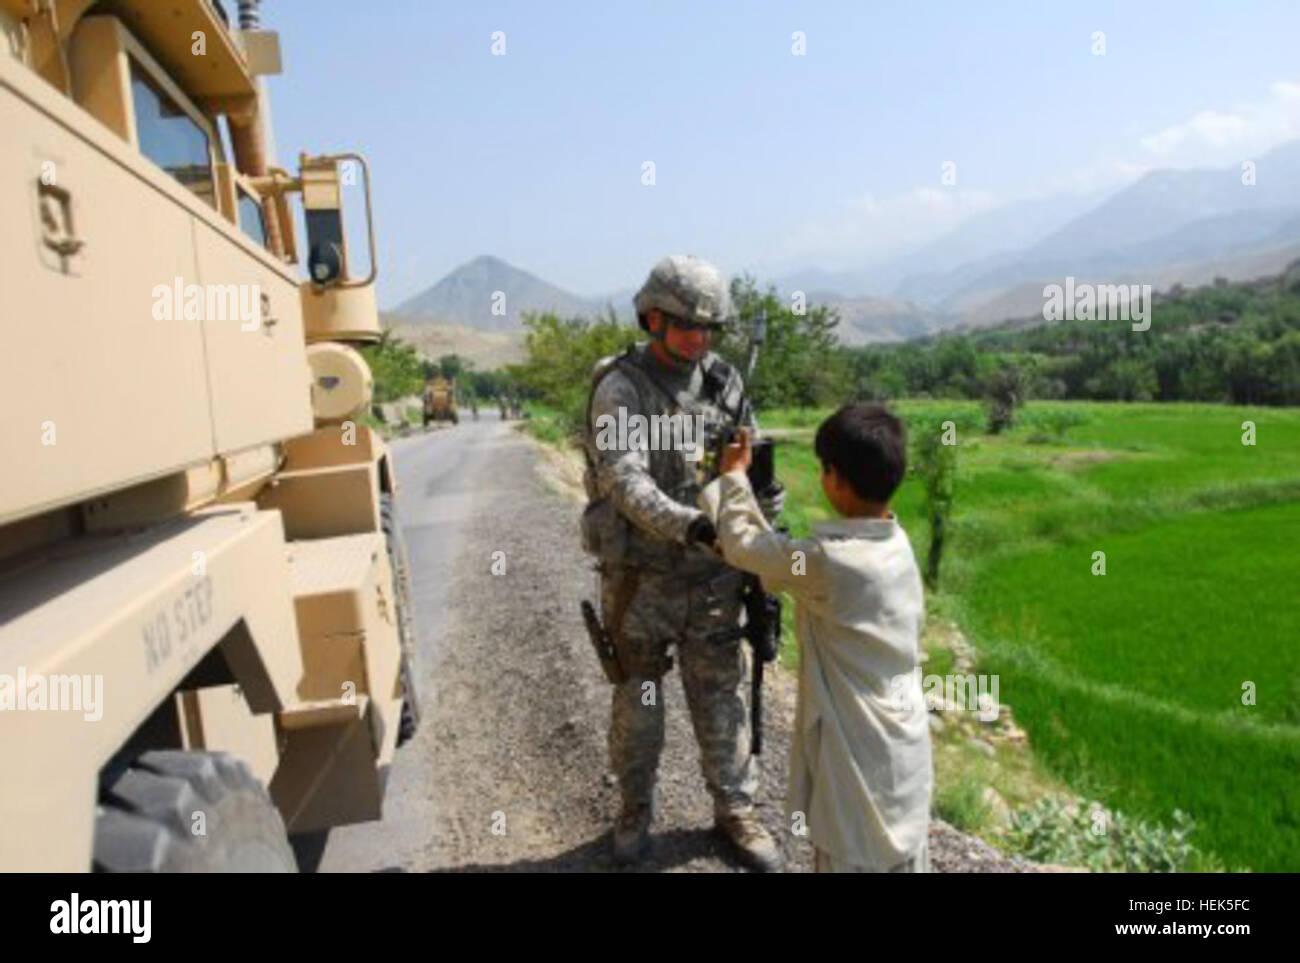 Staff Sgt. Joey Evans of Johnsonville, S.C., Security Force, Nuristan Provincial Reconstruction Team, talks with Stock Photo